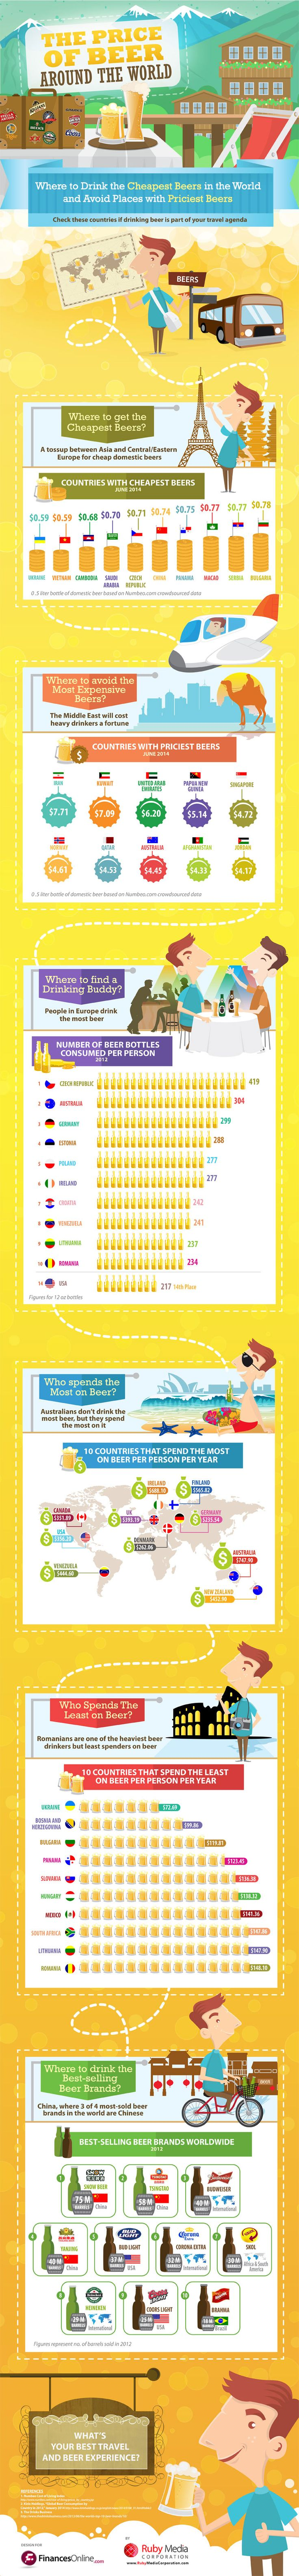 Where You'll Find the Cheapest (and Priciest) Beer Around the World #Infographic